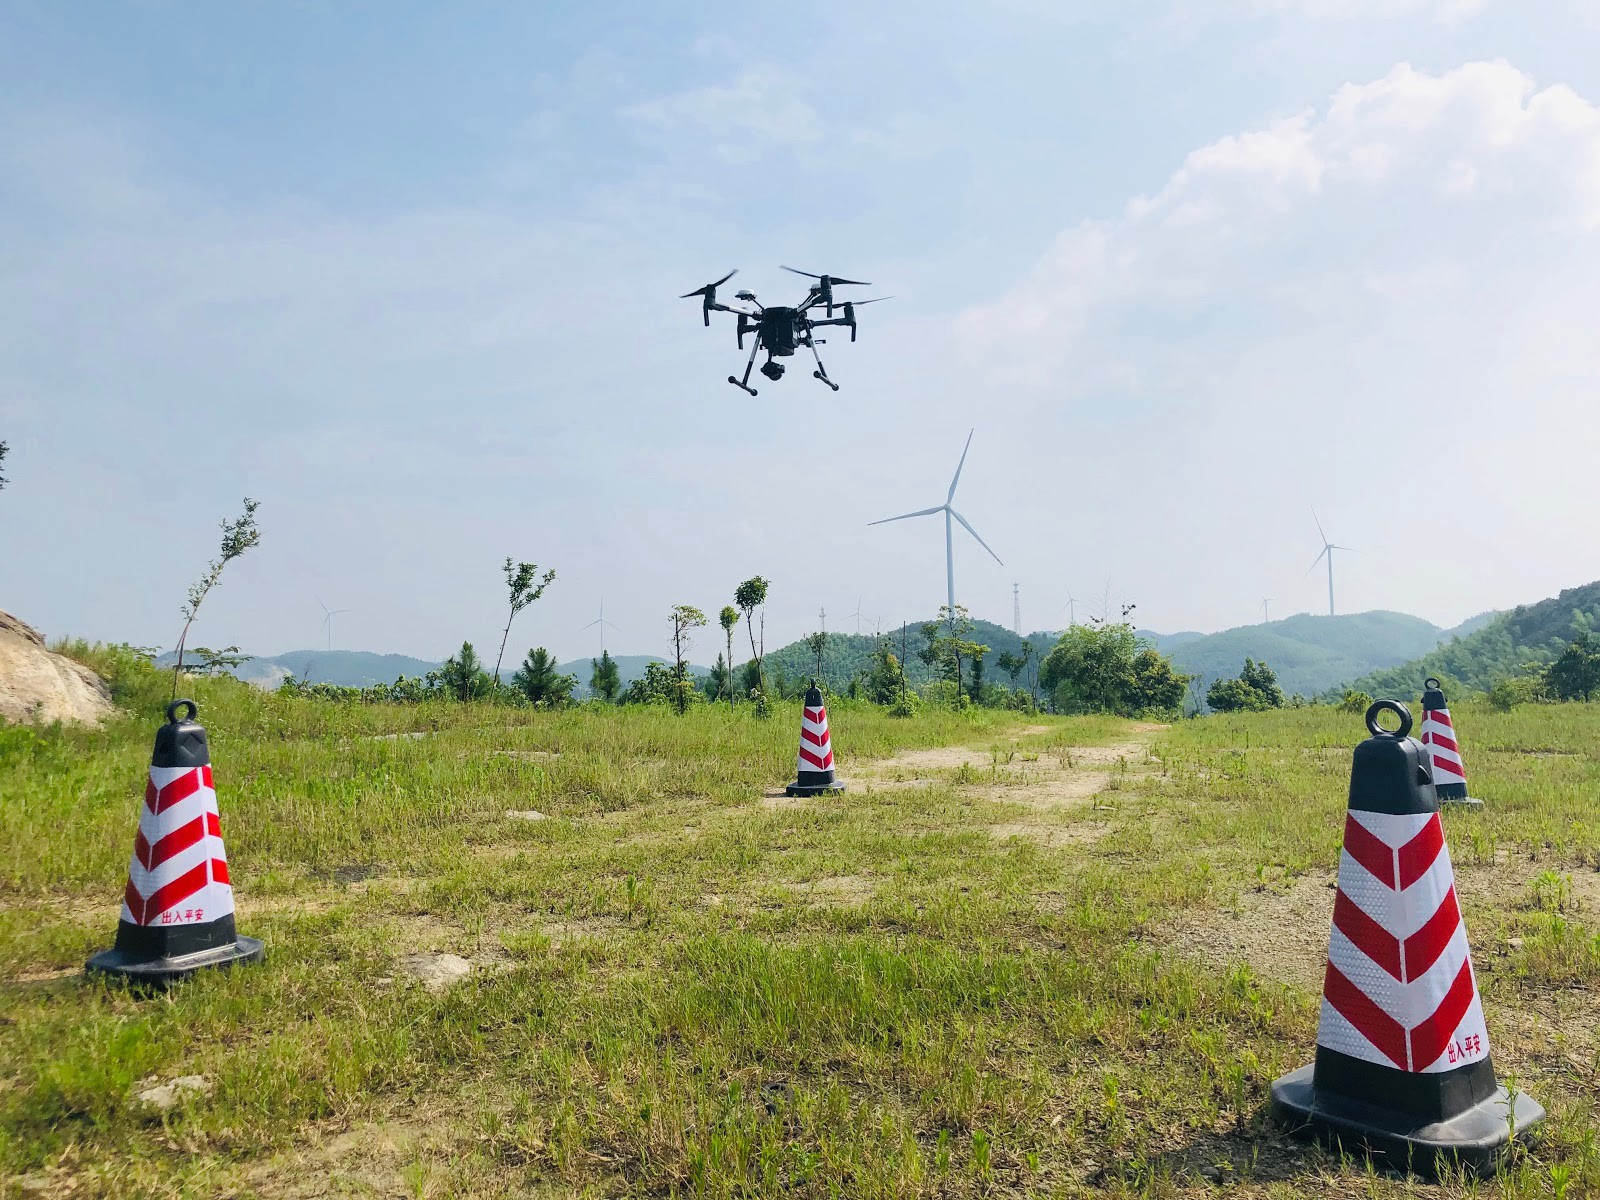 Drone flying arround wind turbines with drones in Yueyang